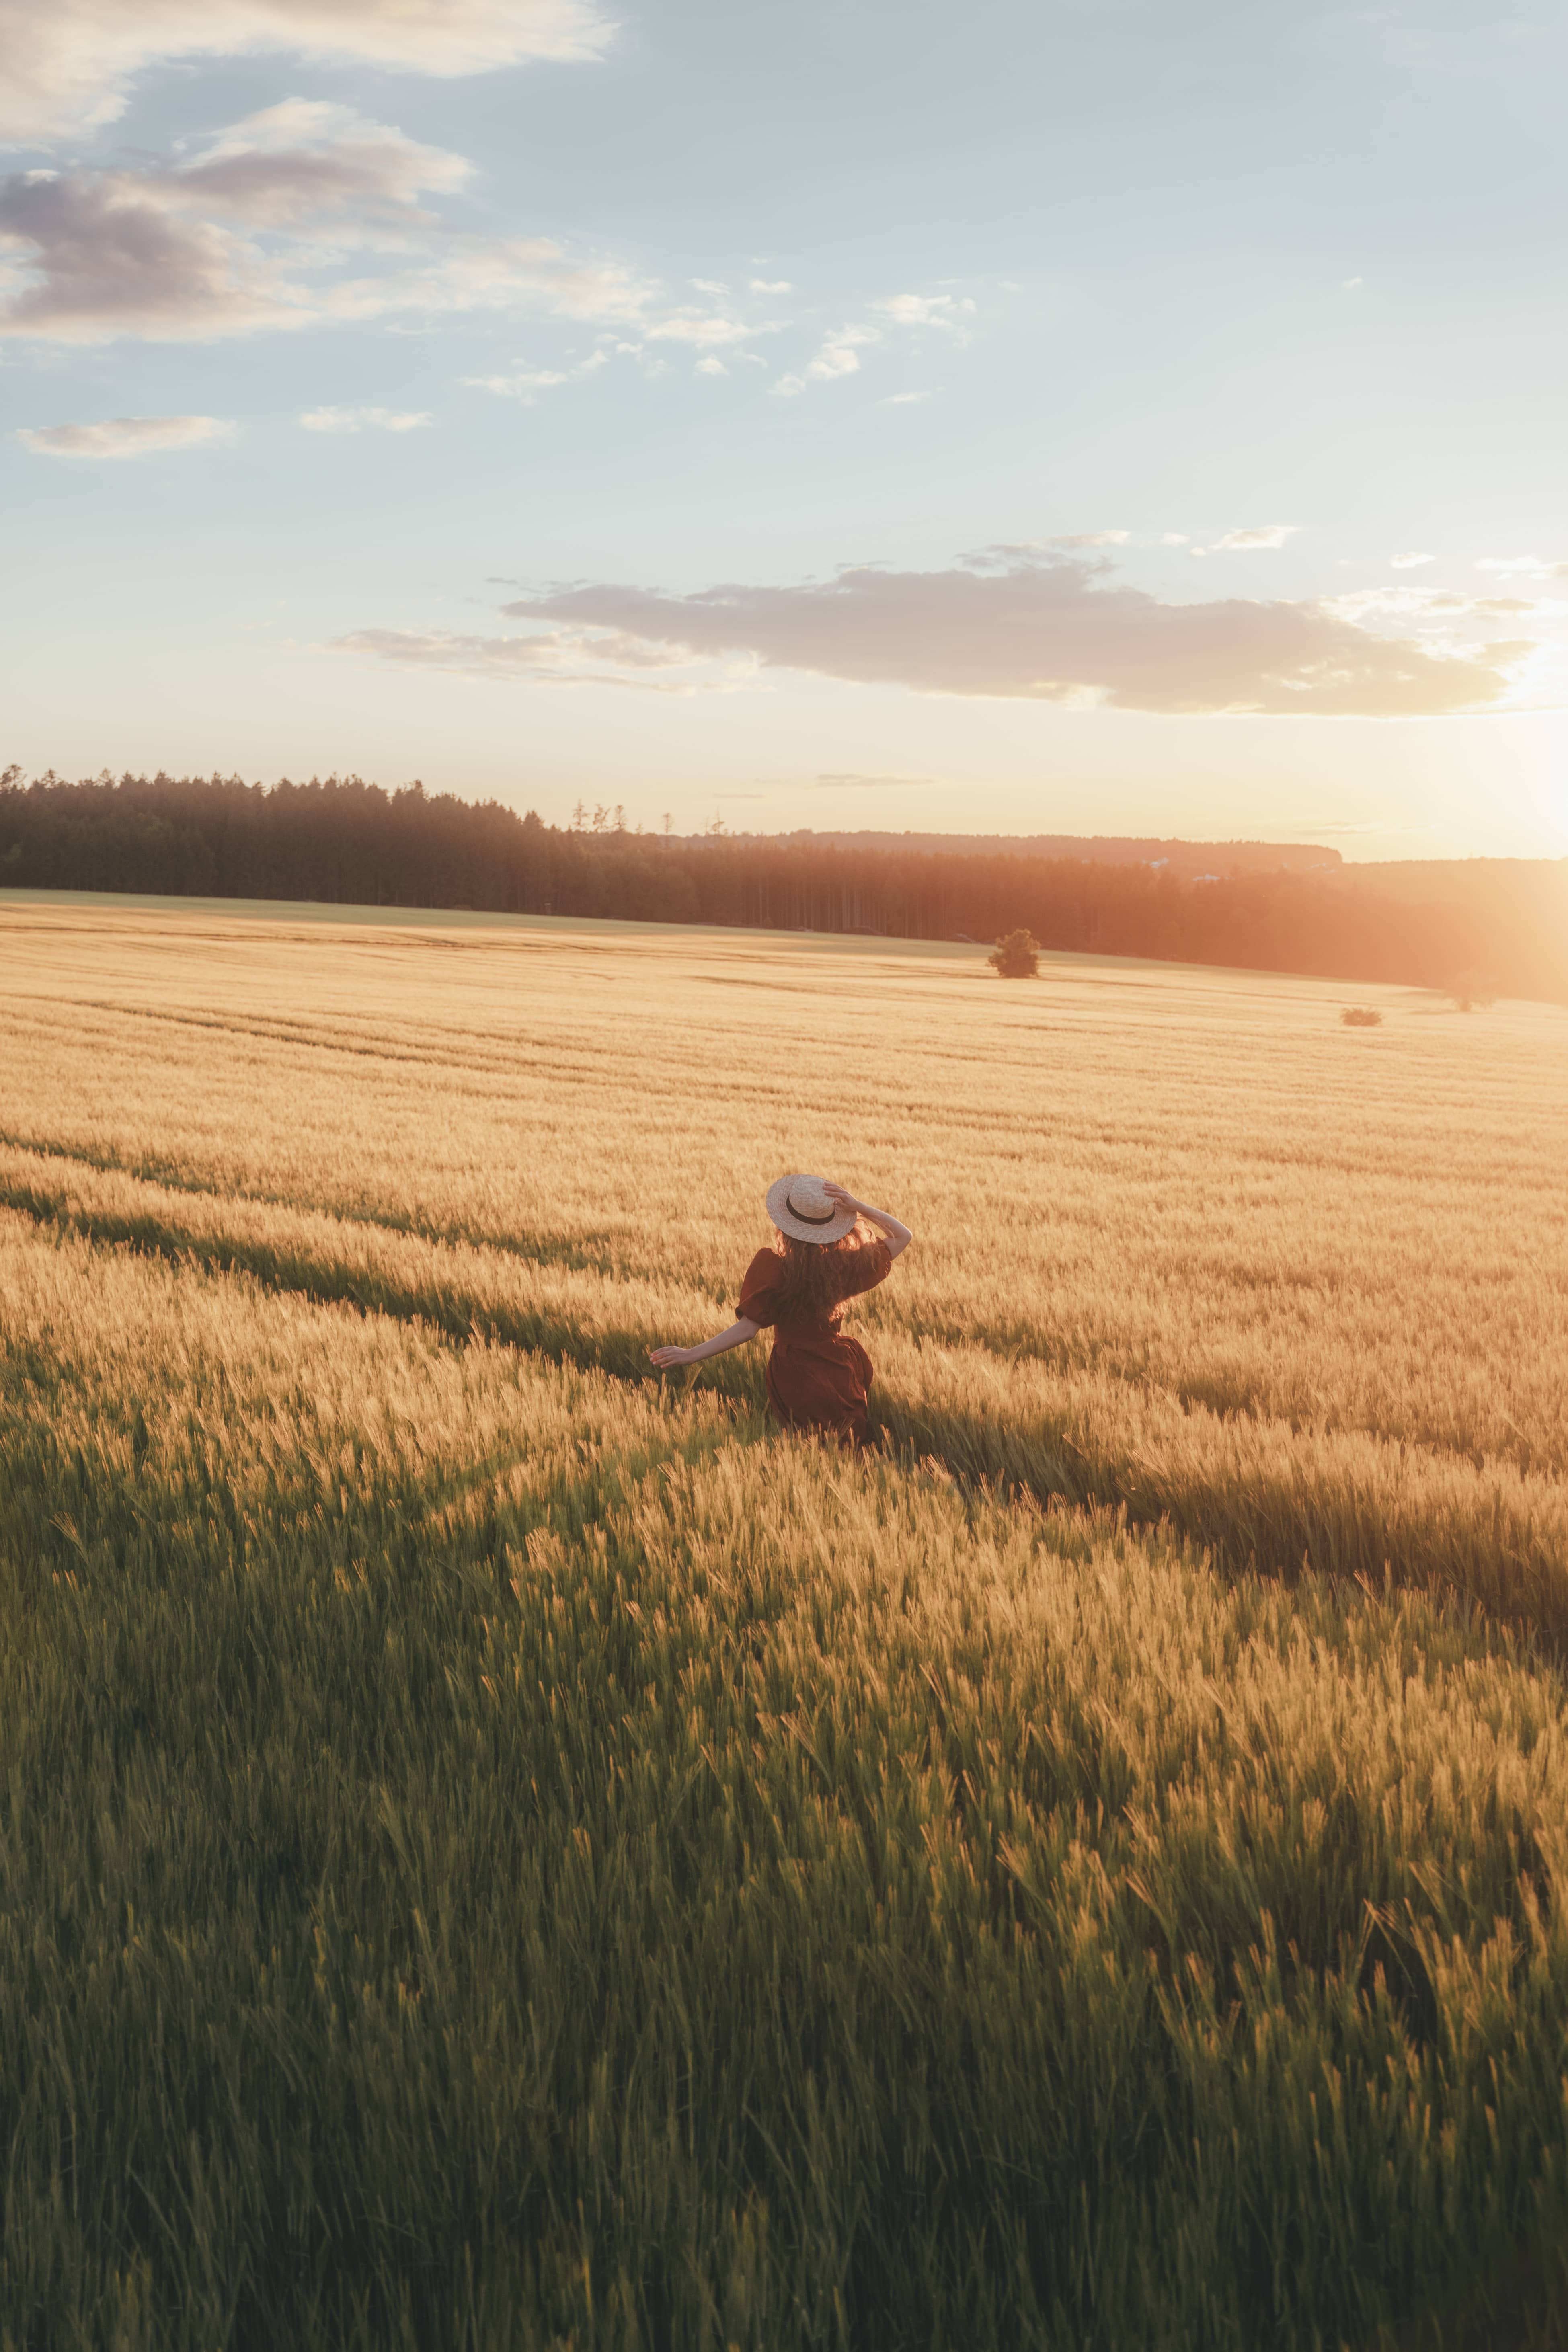 Girl in dress running through wheat field while the sun is setting in the backround